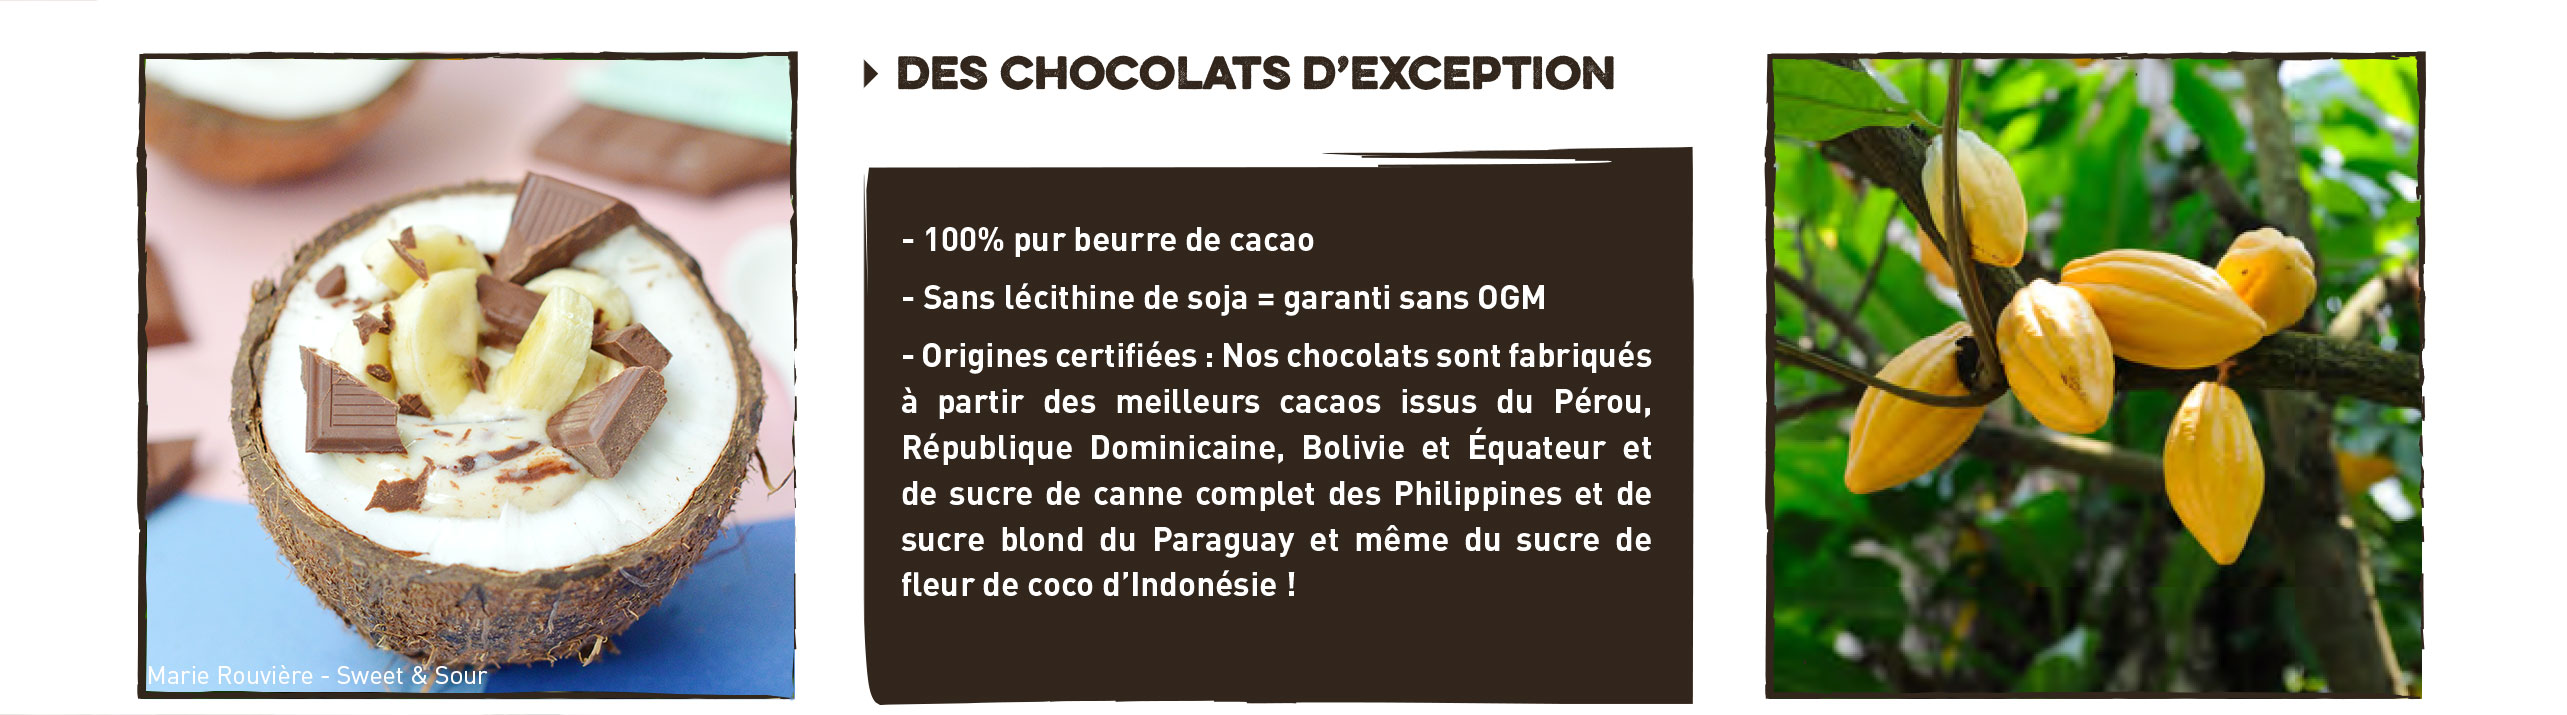 chocolats d'exeption